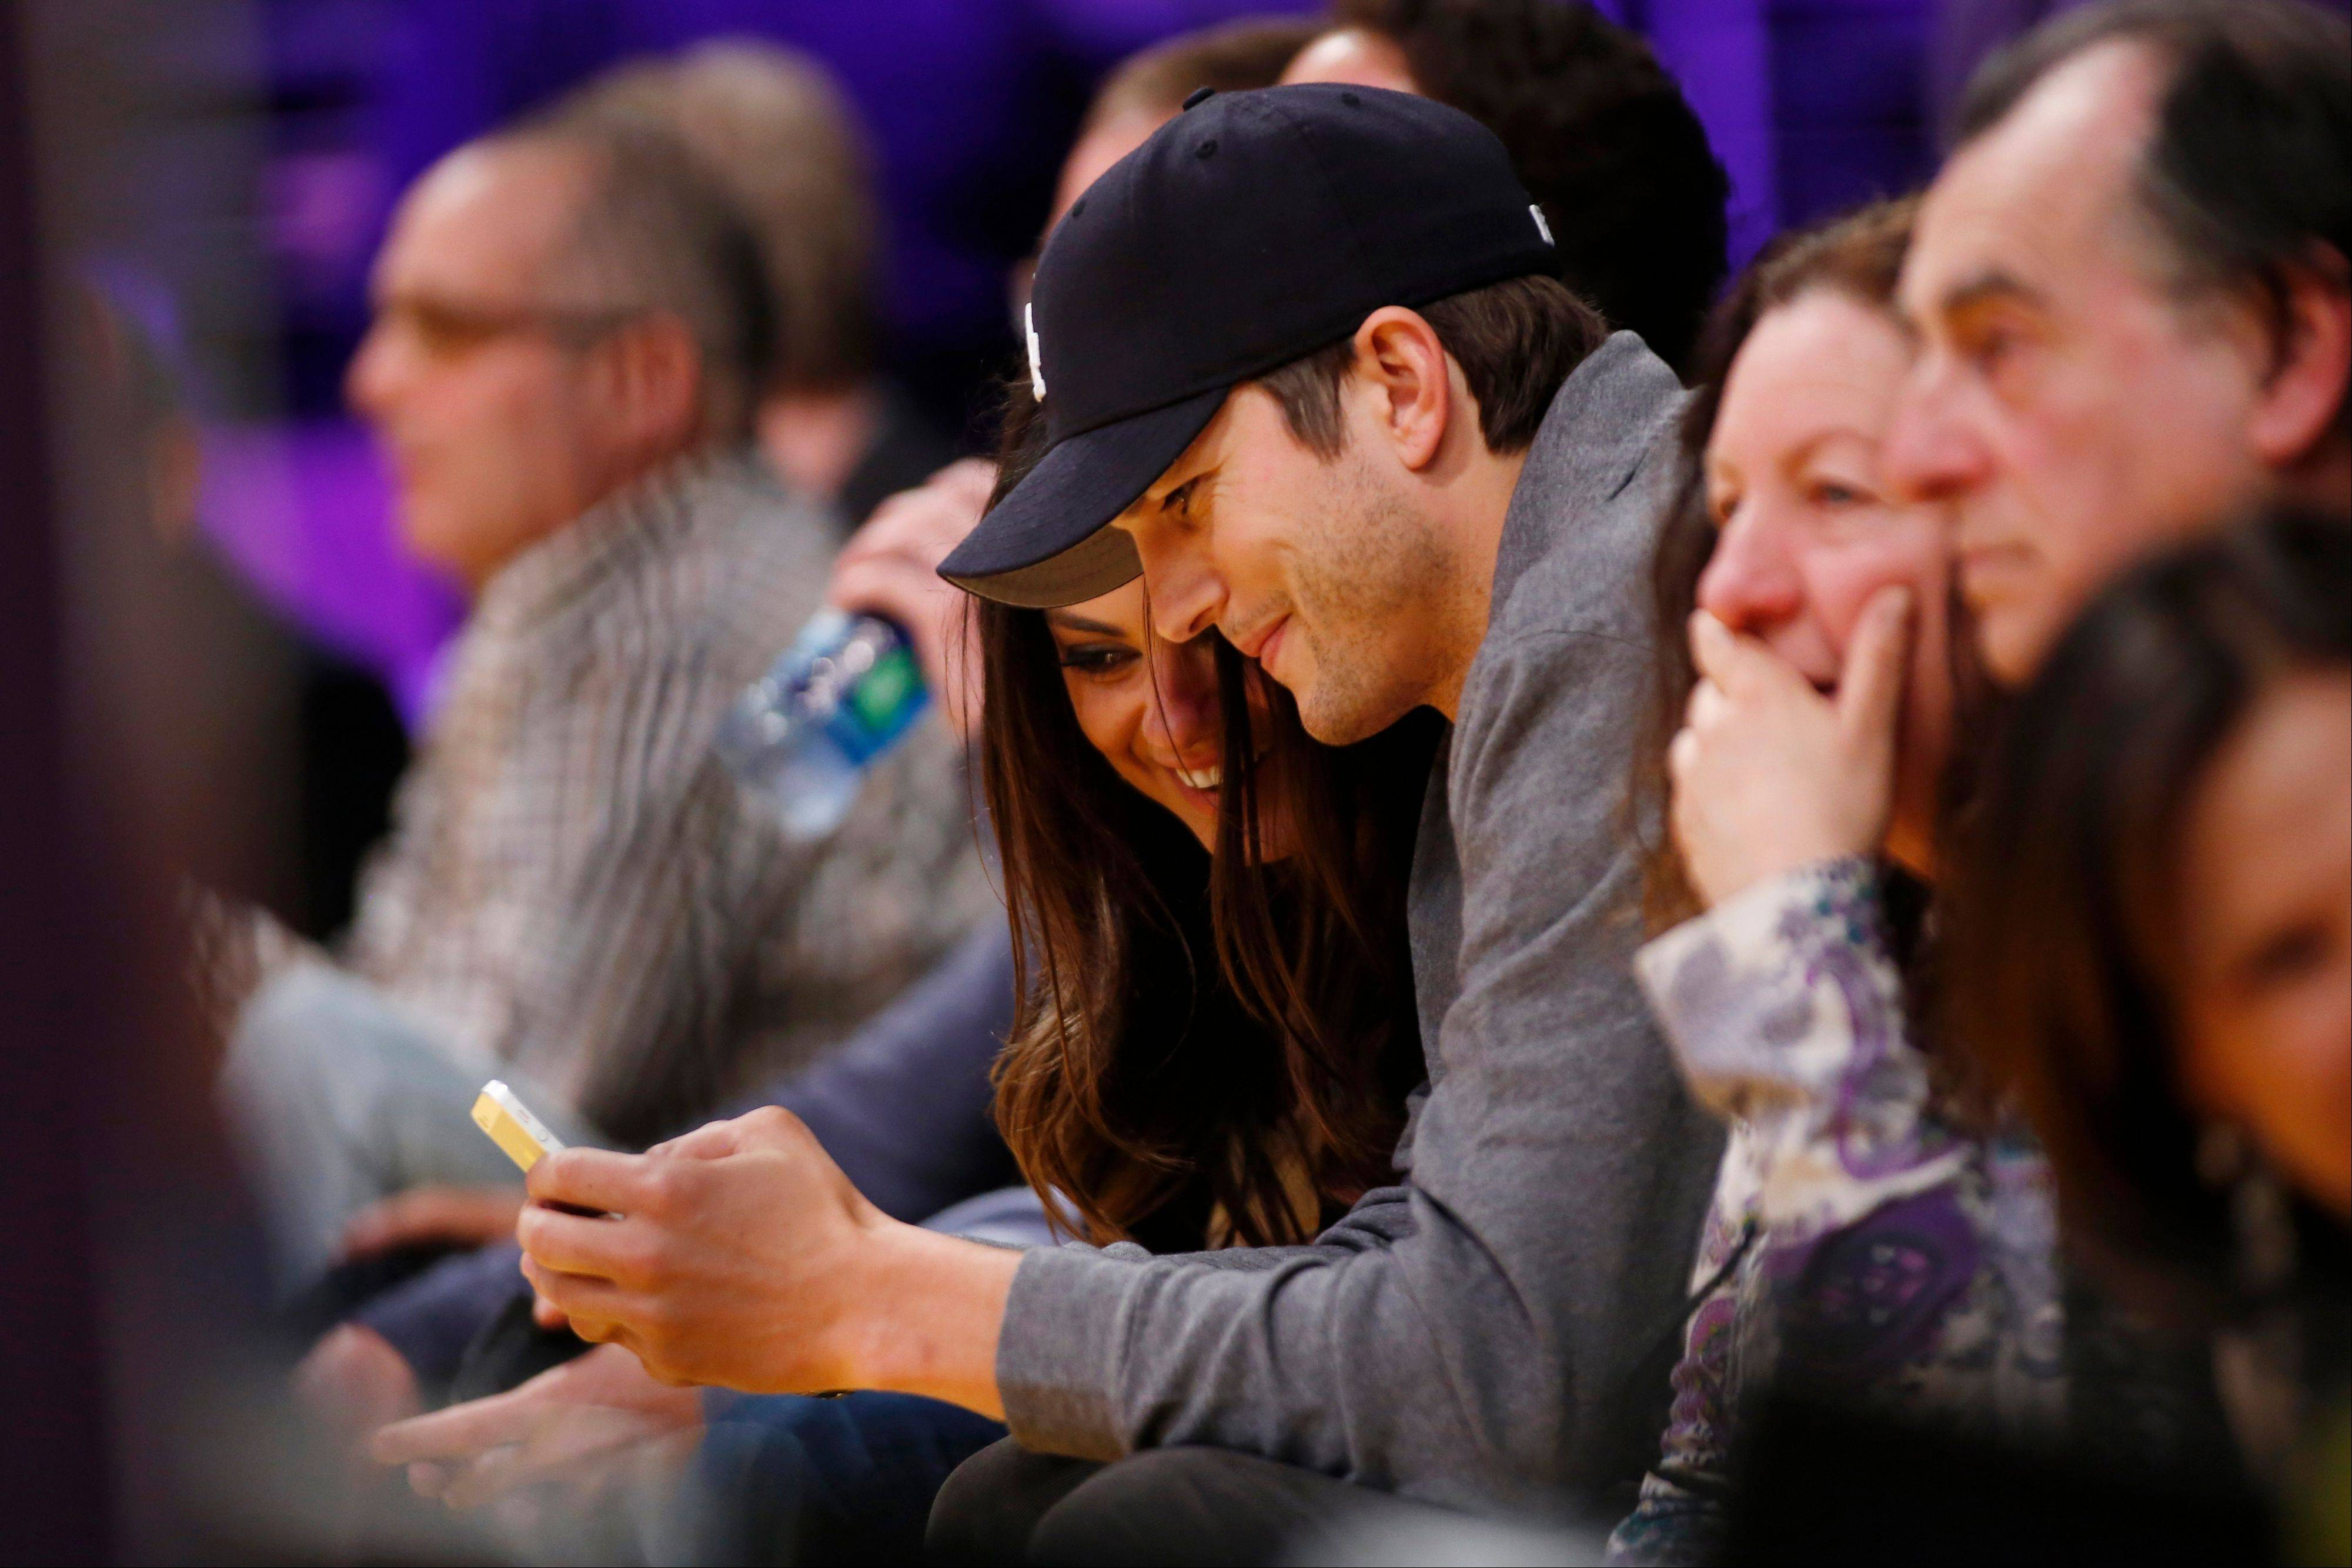 Actors Mila Kunis, left, and Ashton Kutcher look at a mobile phone as they sit courtside together at the NBA basketball game between the Phoenix Suns and Los Angeles Lakers, in Los Angeles. Kutcher is included on a long list of celebrities who — at one time or another — have taken a break from Twitter. Twitter burnout among celebrities, athletes and shameless self-promoters poses a risk to the company and its investors.